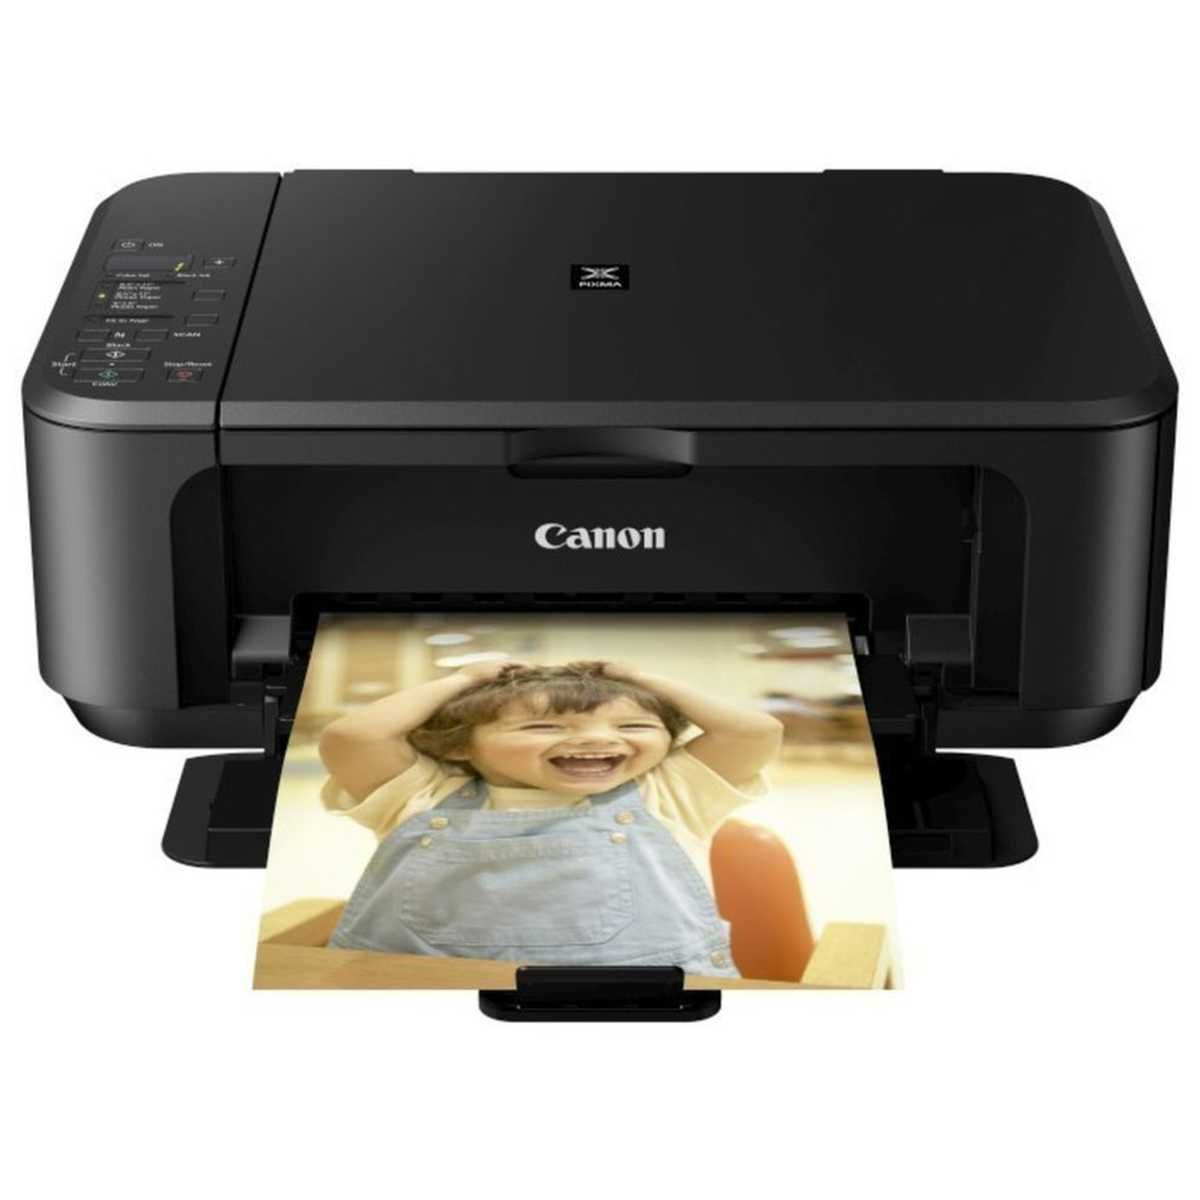 Canon PIXMA MG2260 Driver Download, Printer, Ink, Manual, canon printer  mg2260 installation, canon pixma mg2260 instruction manual, canon mg2260